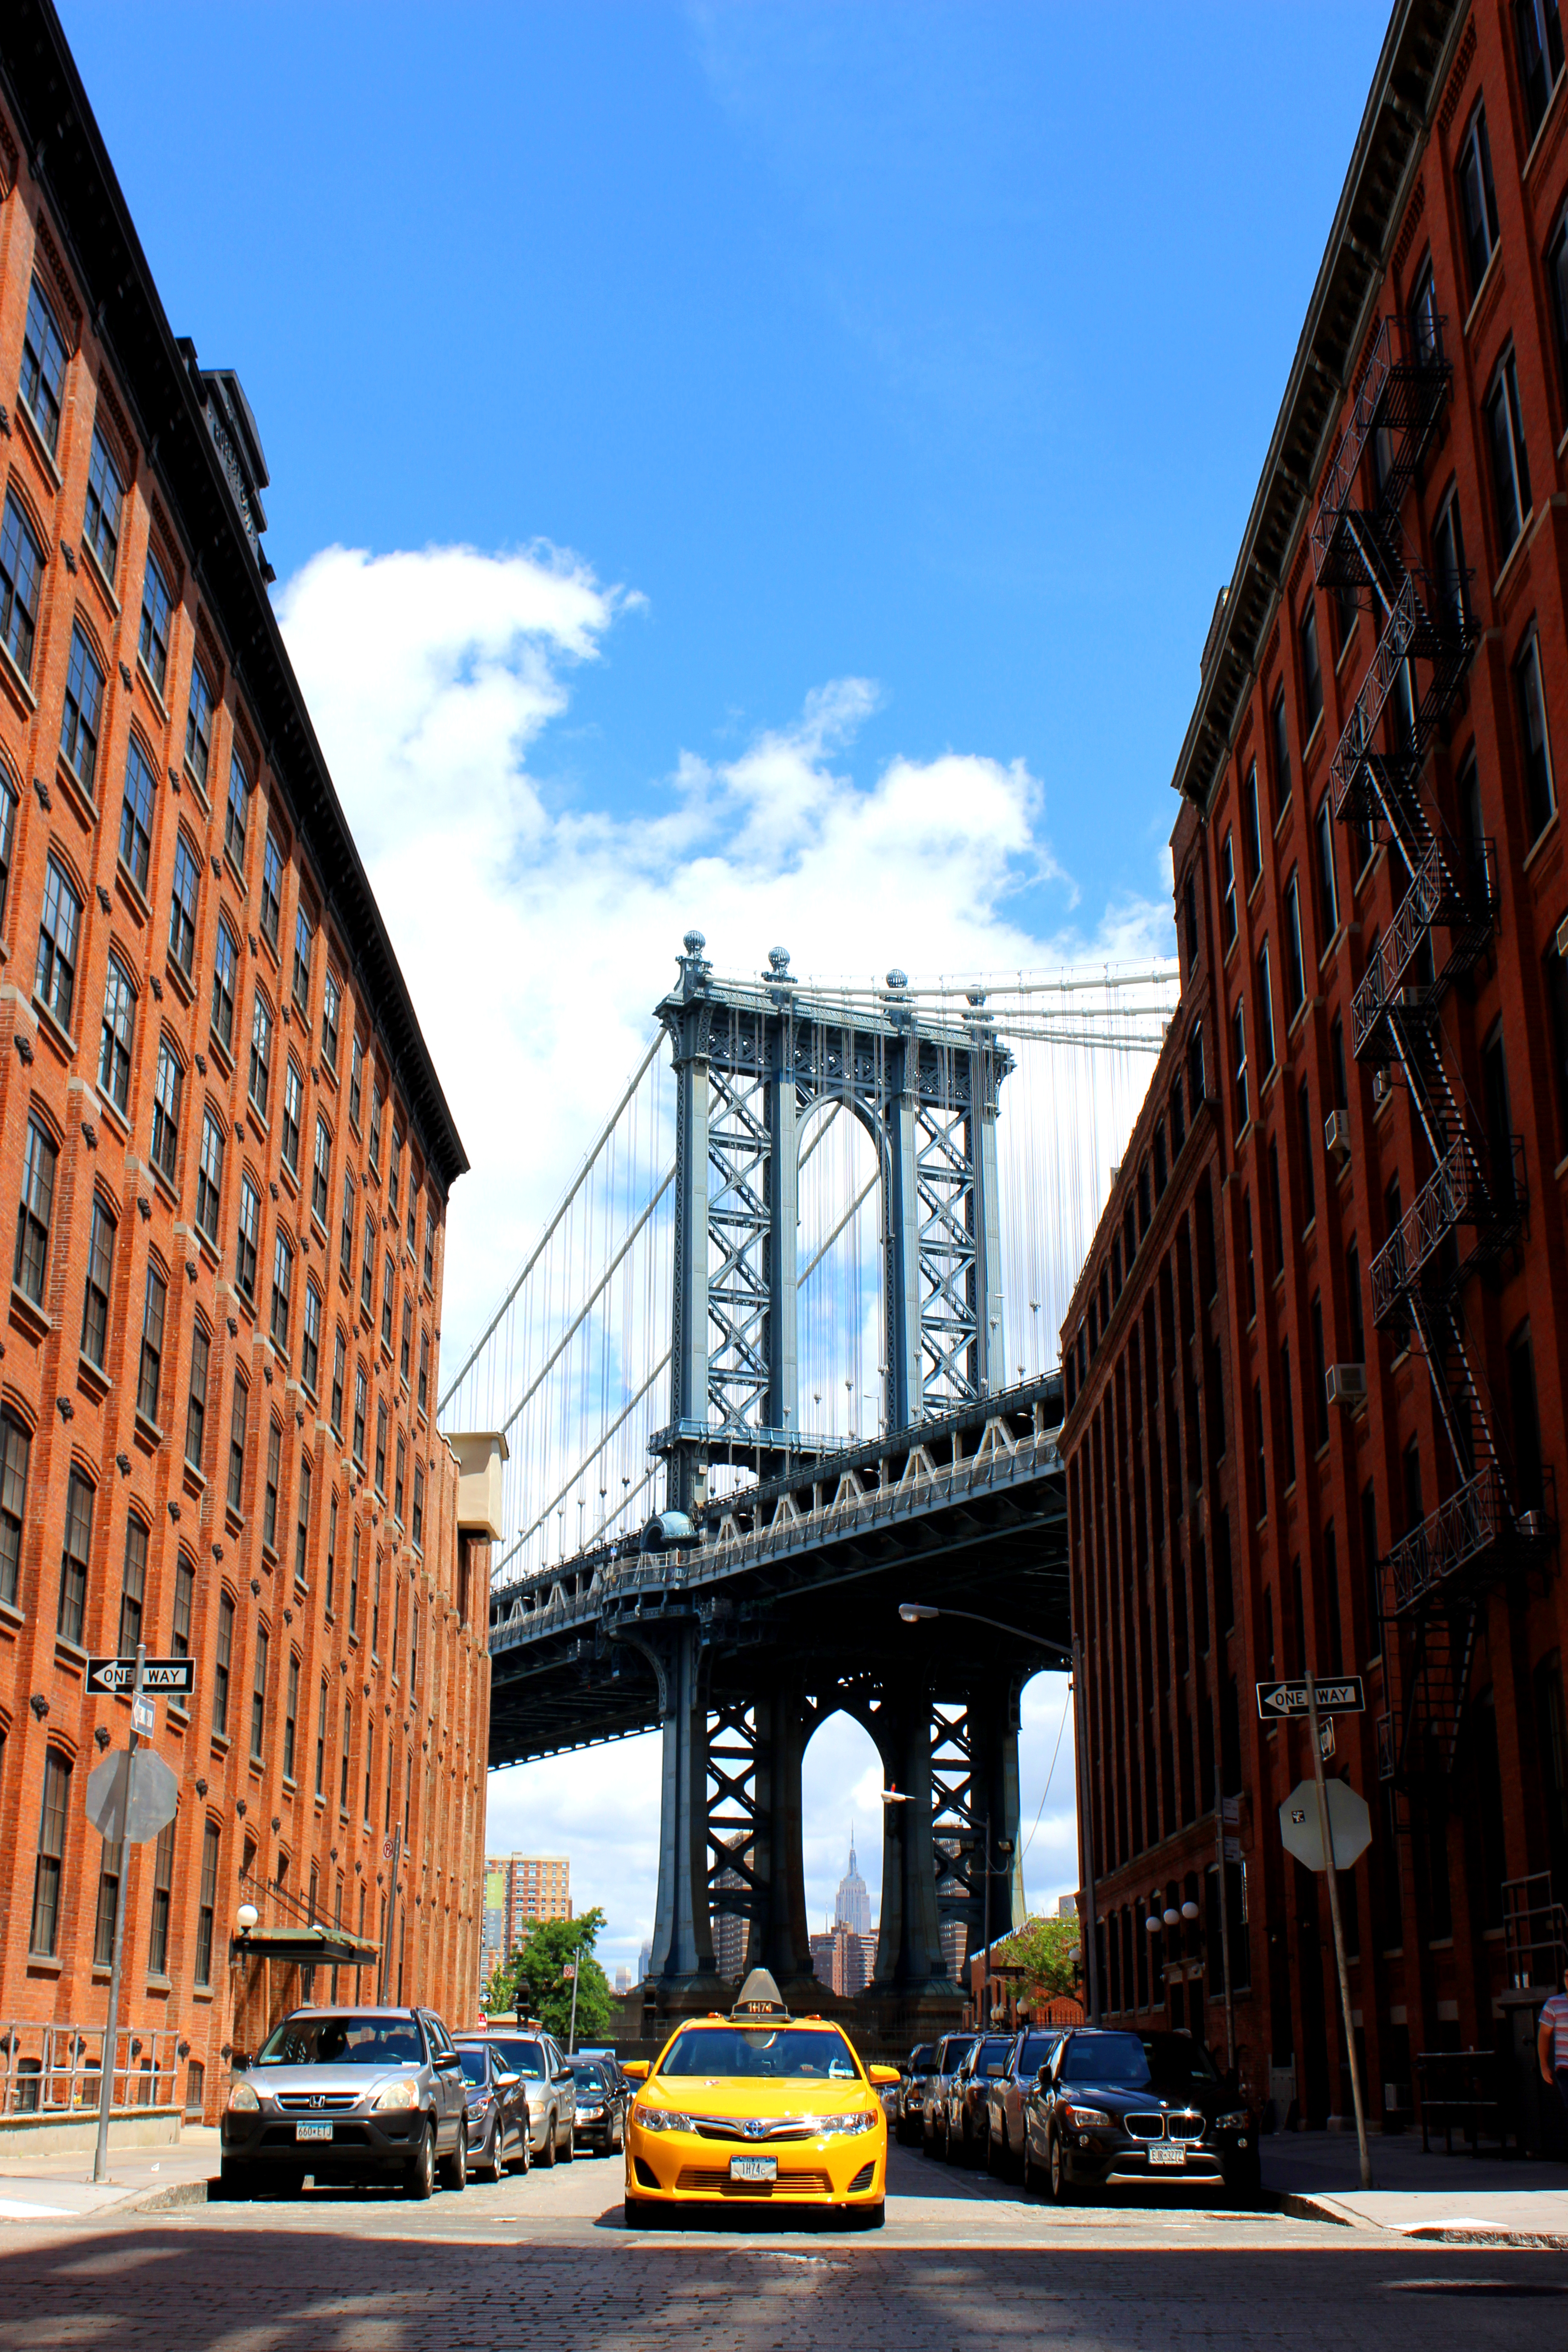 Bridge by two red brick buildings photo